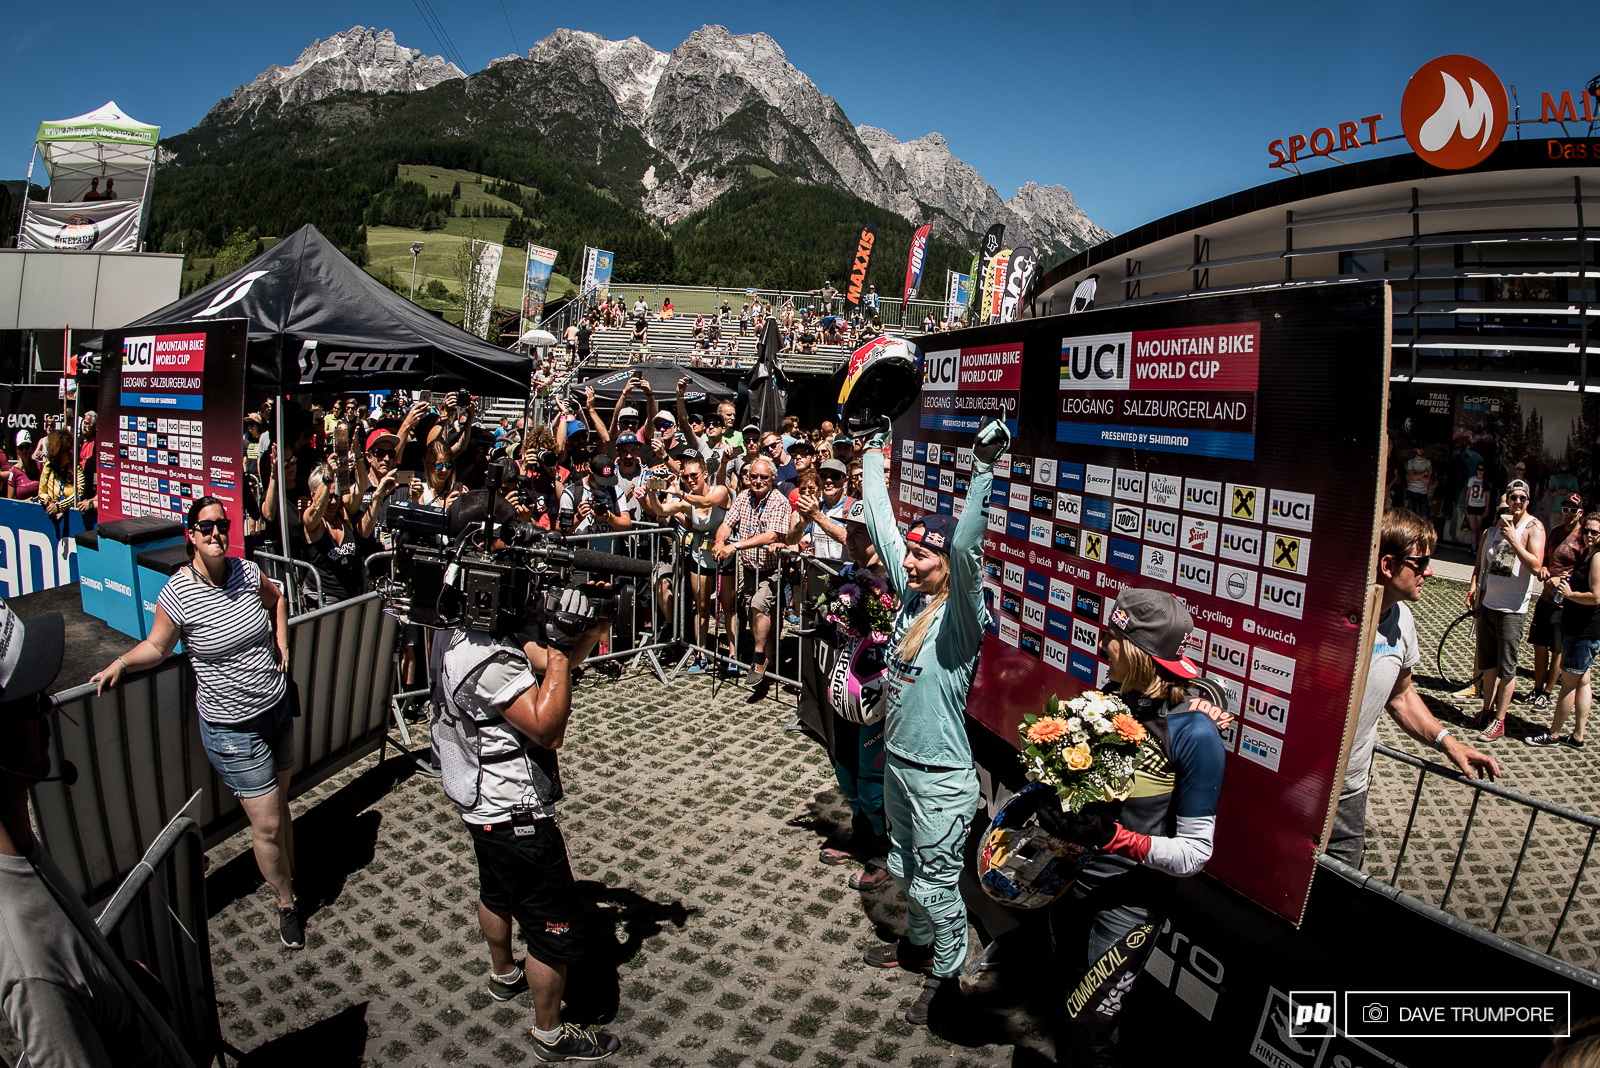 What a day for Tahnee Tracey and Pom Pon in Leogang.